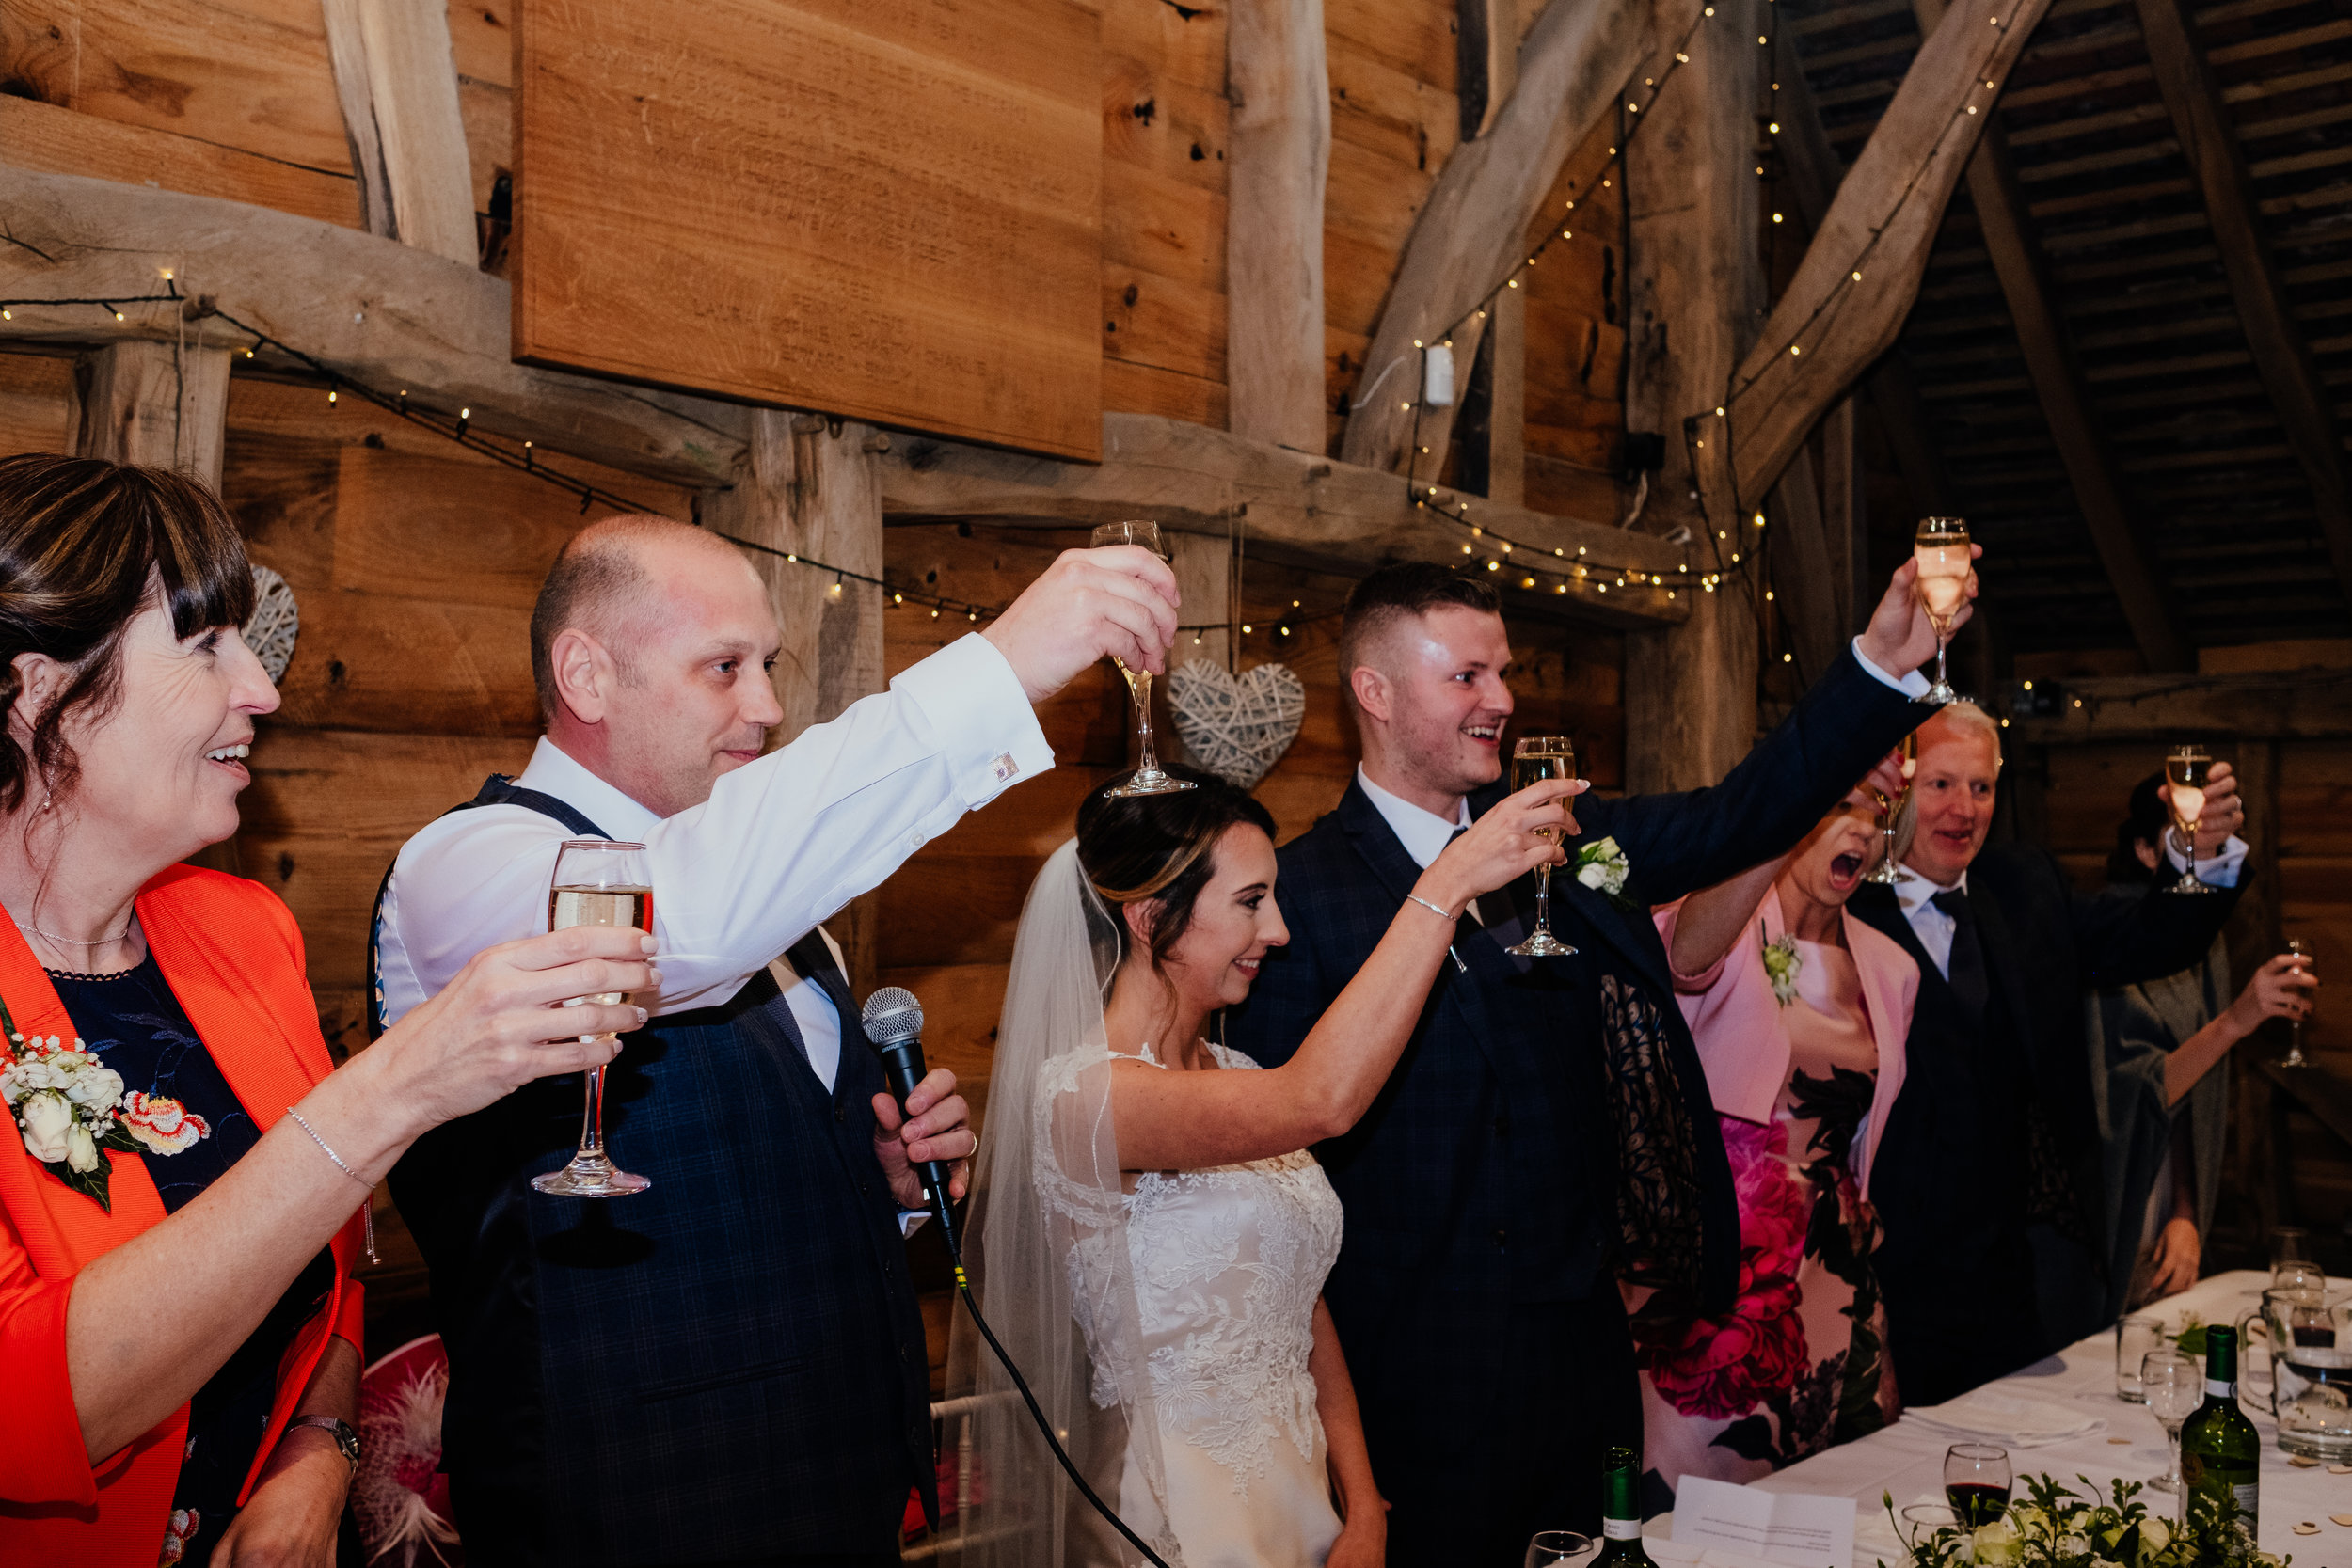 Guests raise a toast at wedding